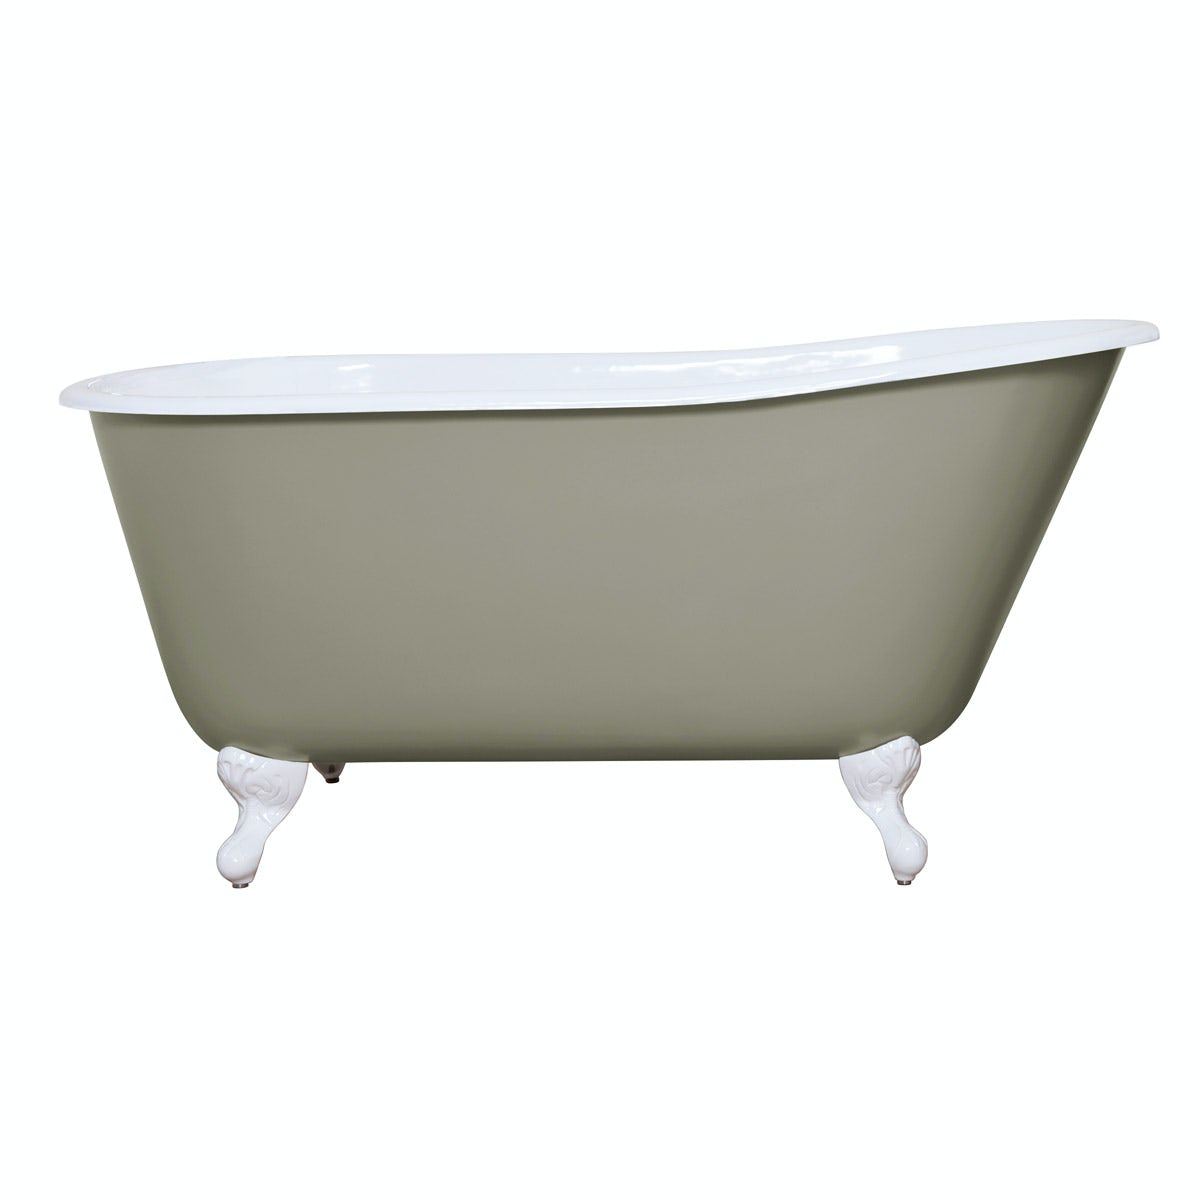 The Bath Co. Warwick misted green cast iron bath